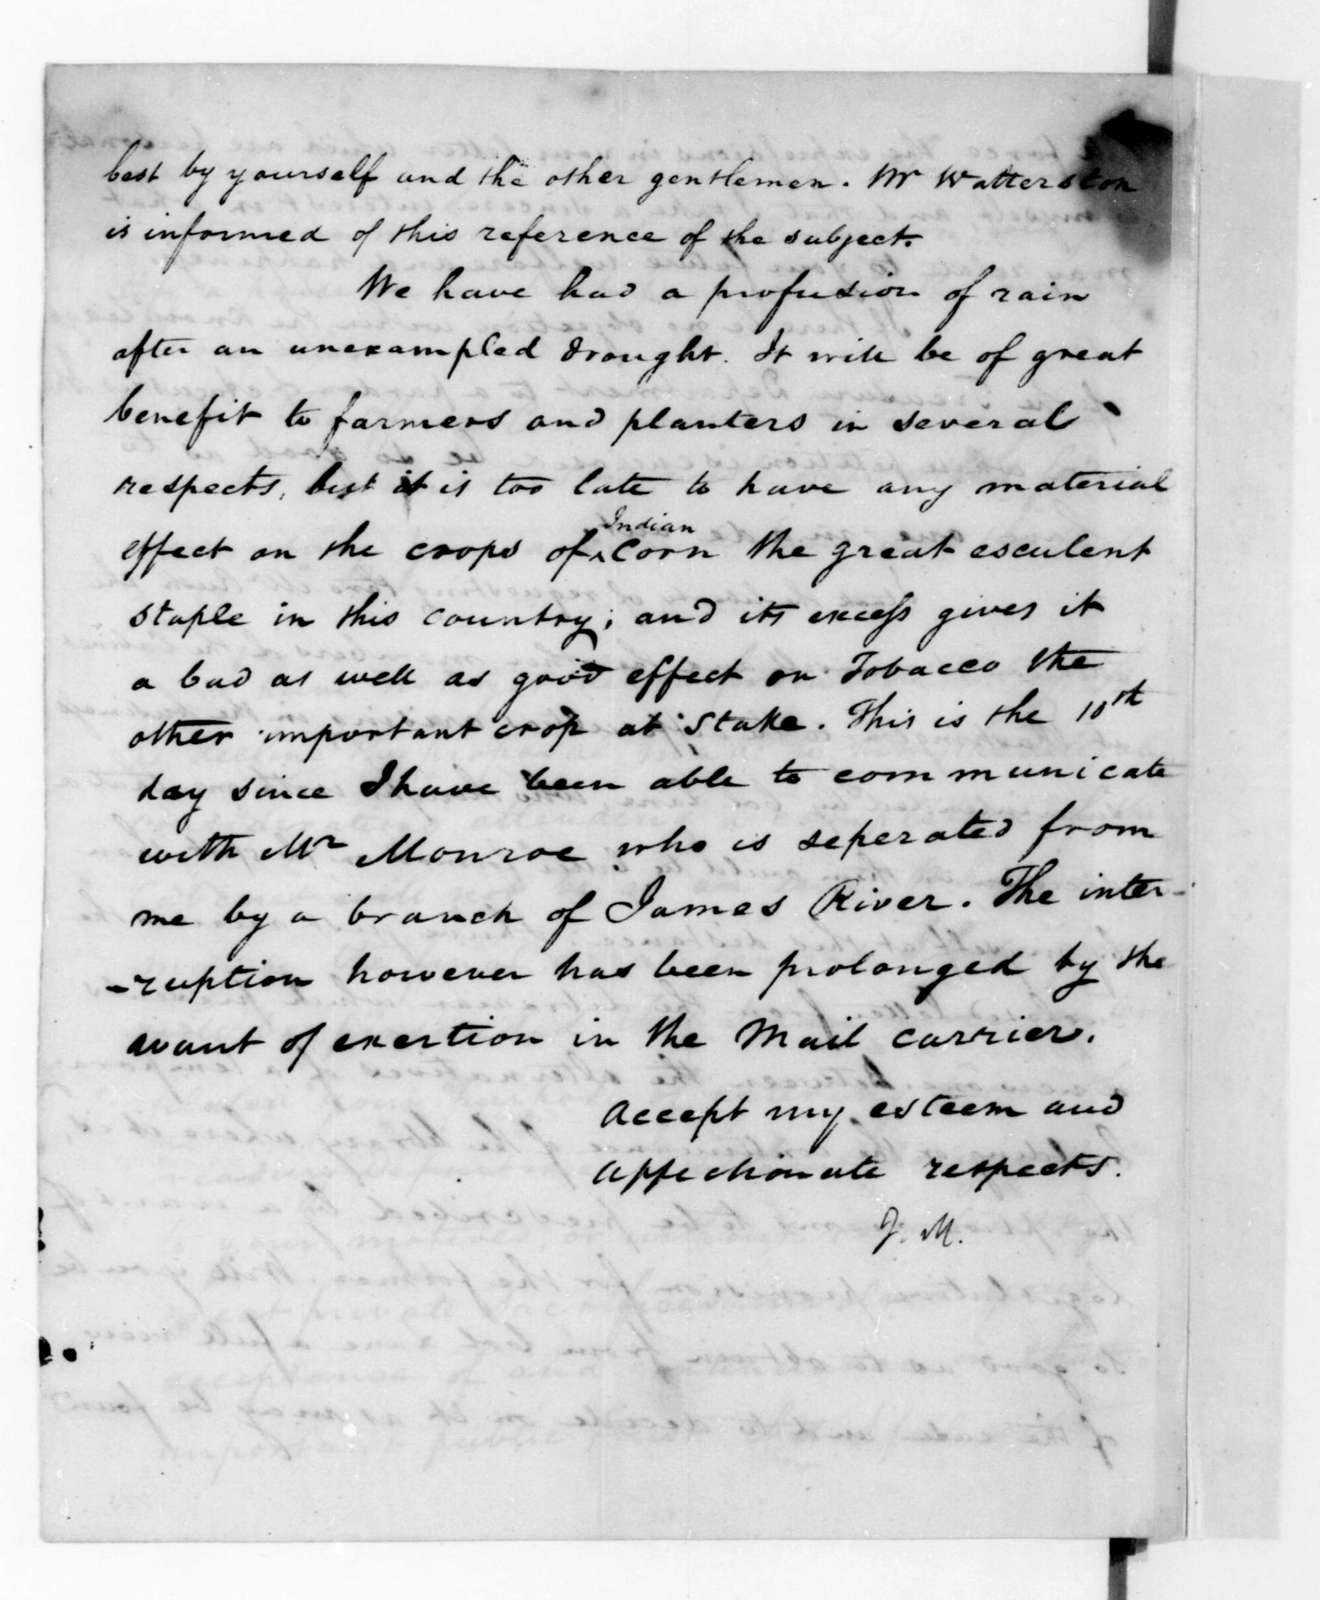 James Madison to Alexander J. Dallas, September 15, 1816.